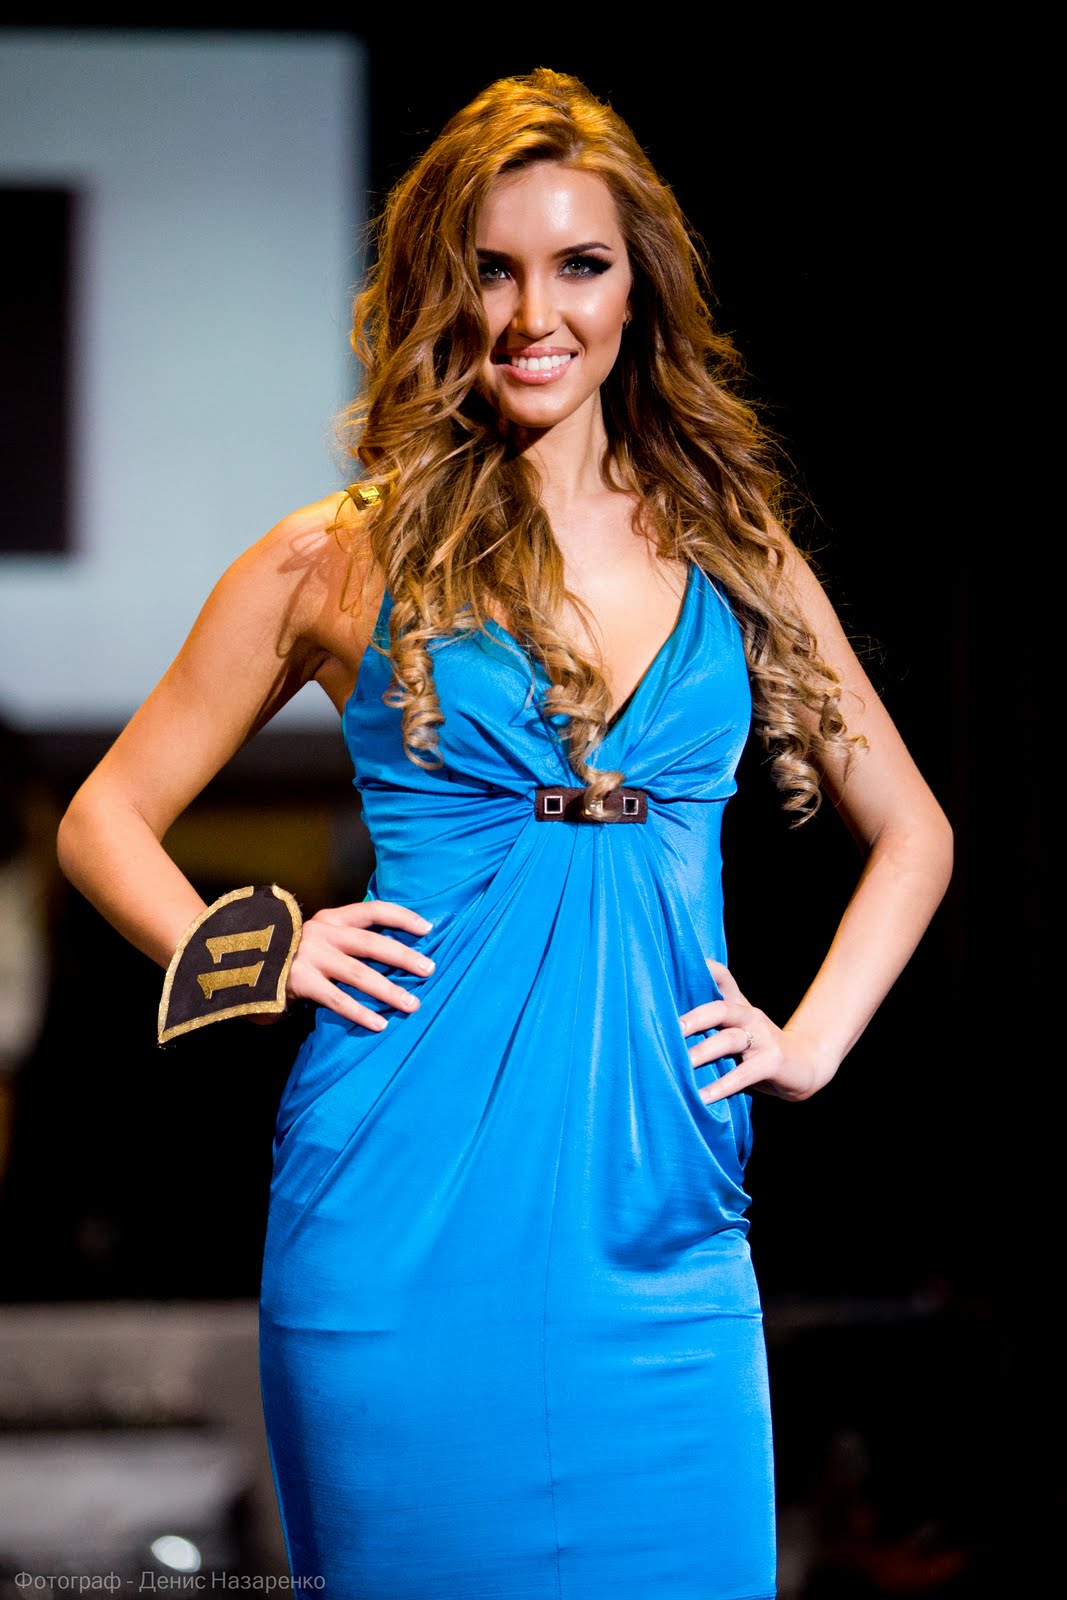 The BEAUTY PAGEANTS Thread - 16 - Page 87 — Pageants and